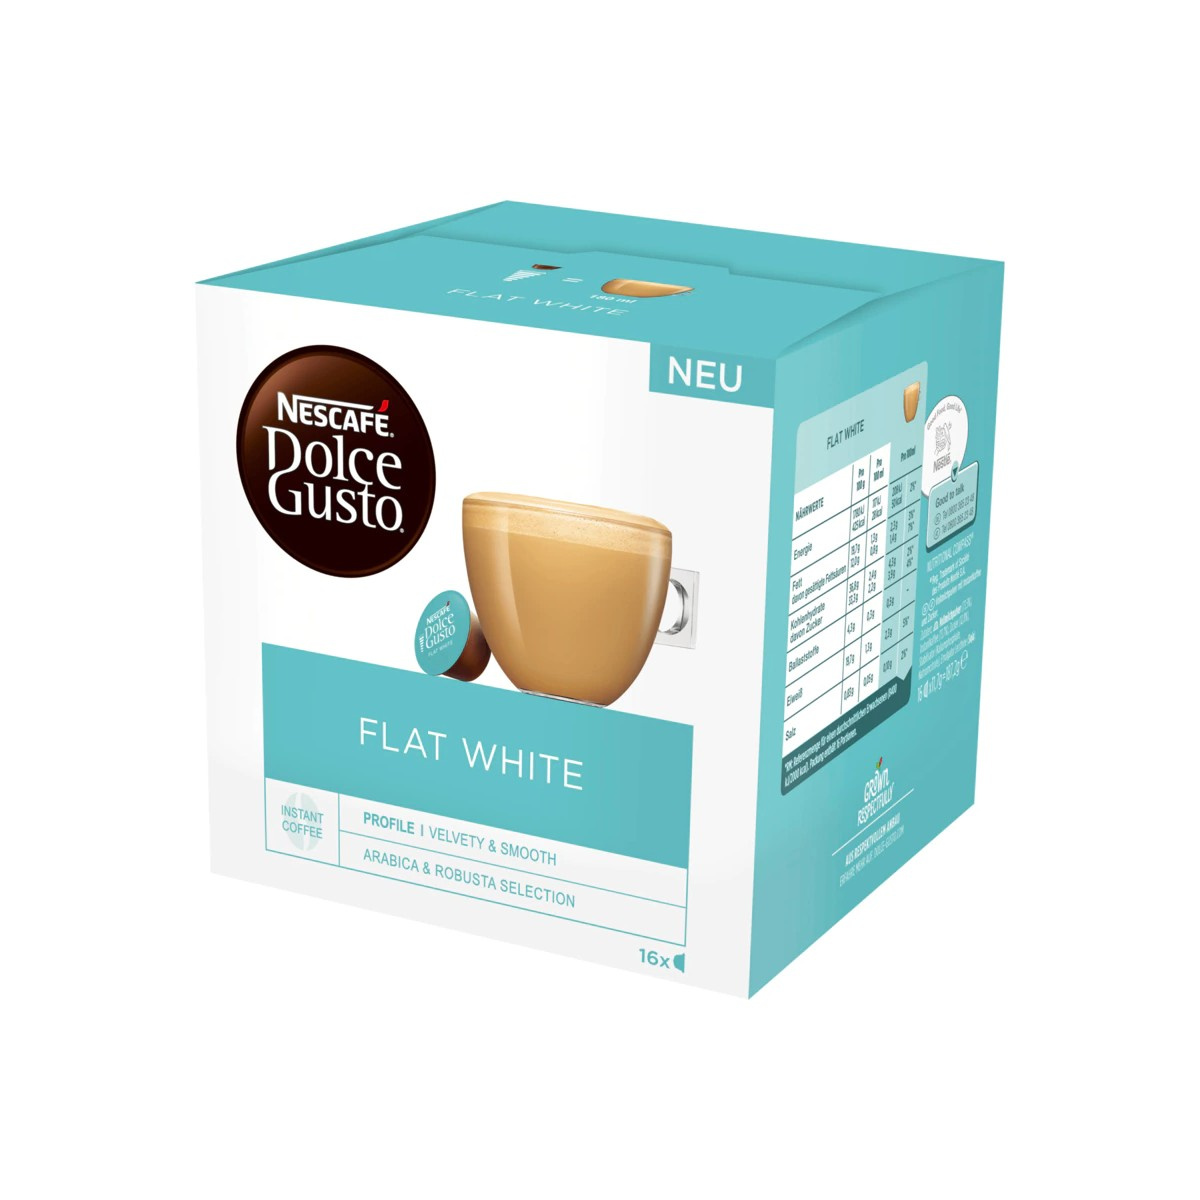 Buy Nescafé Dolce Gusto Flat White in Berlin with delivery